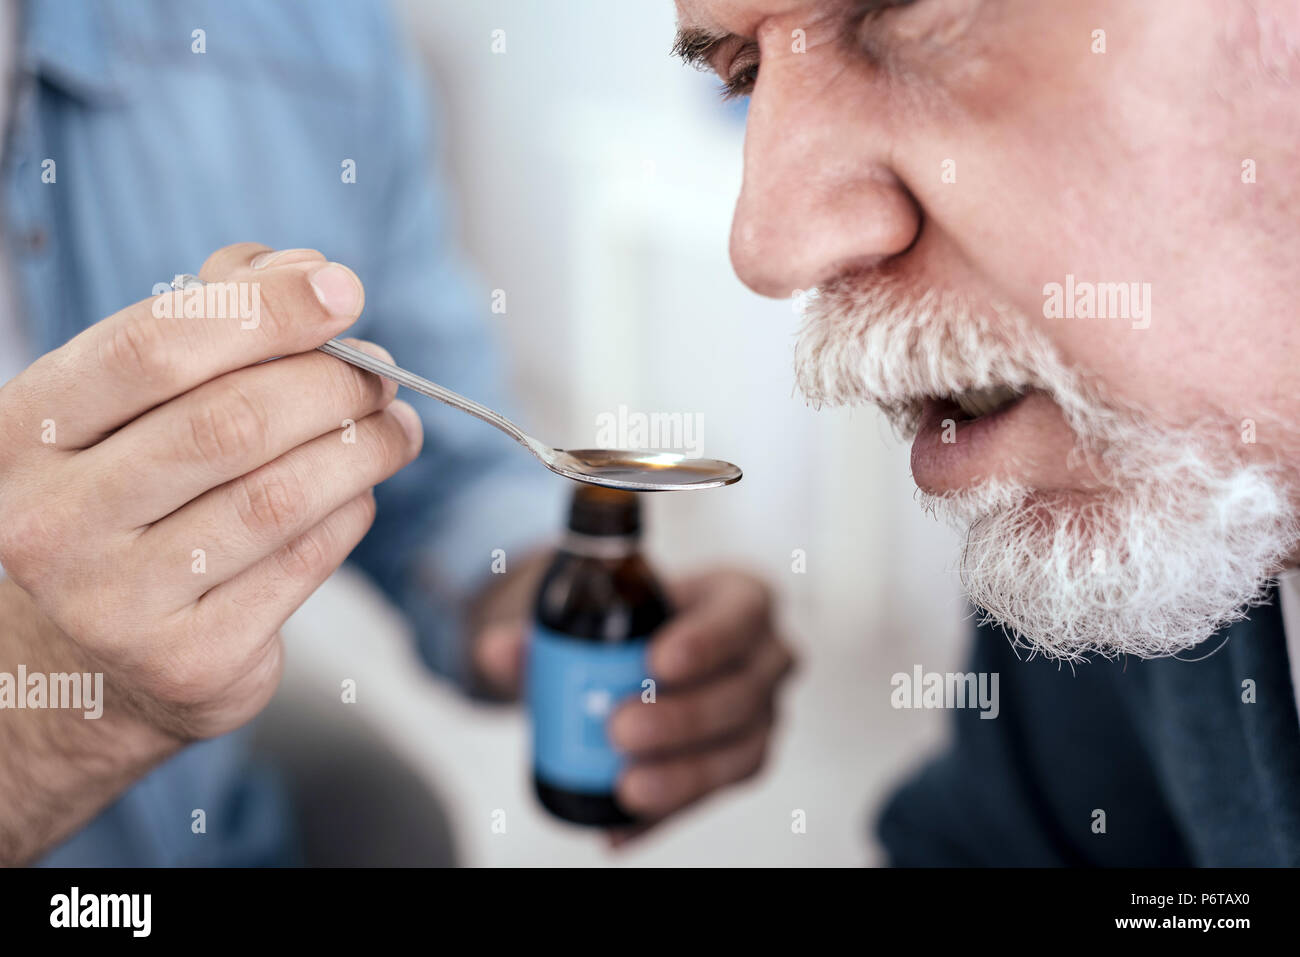 Mauvais senior man drinking med Photo Stock